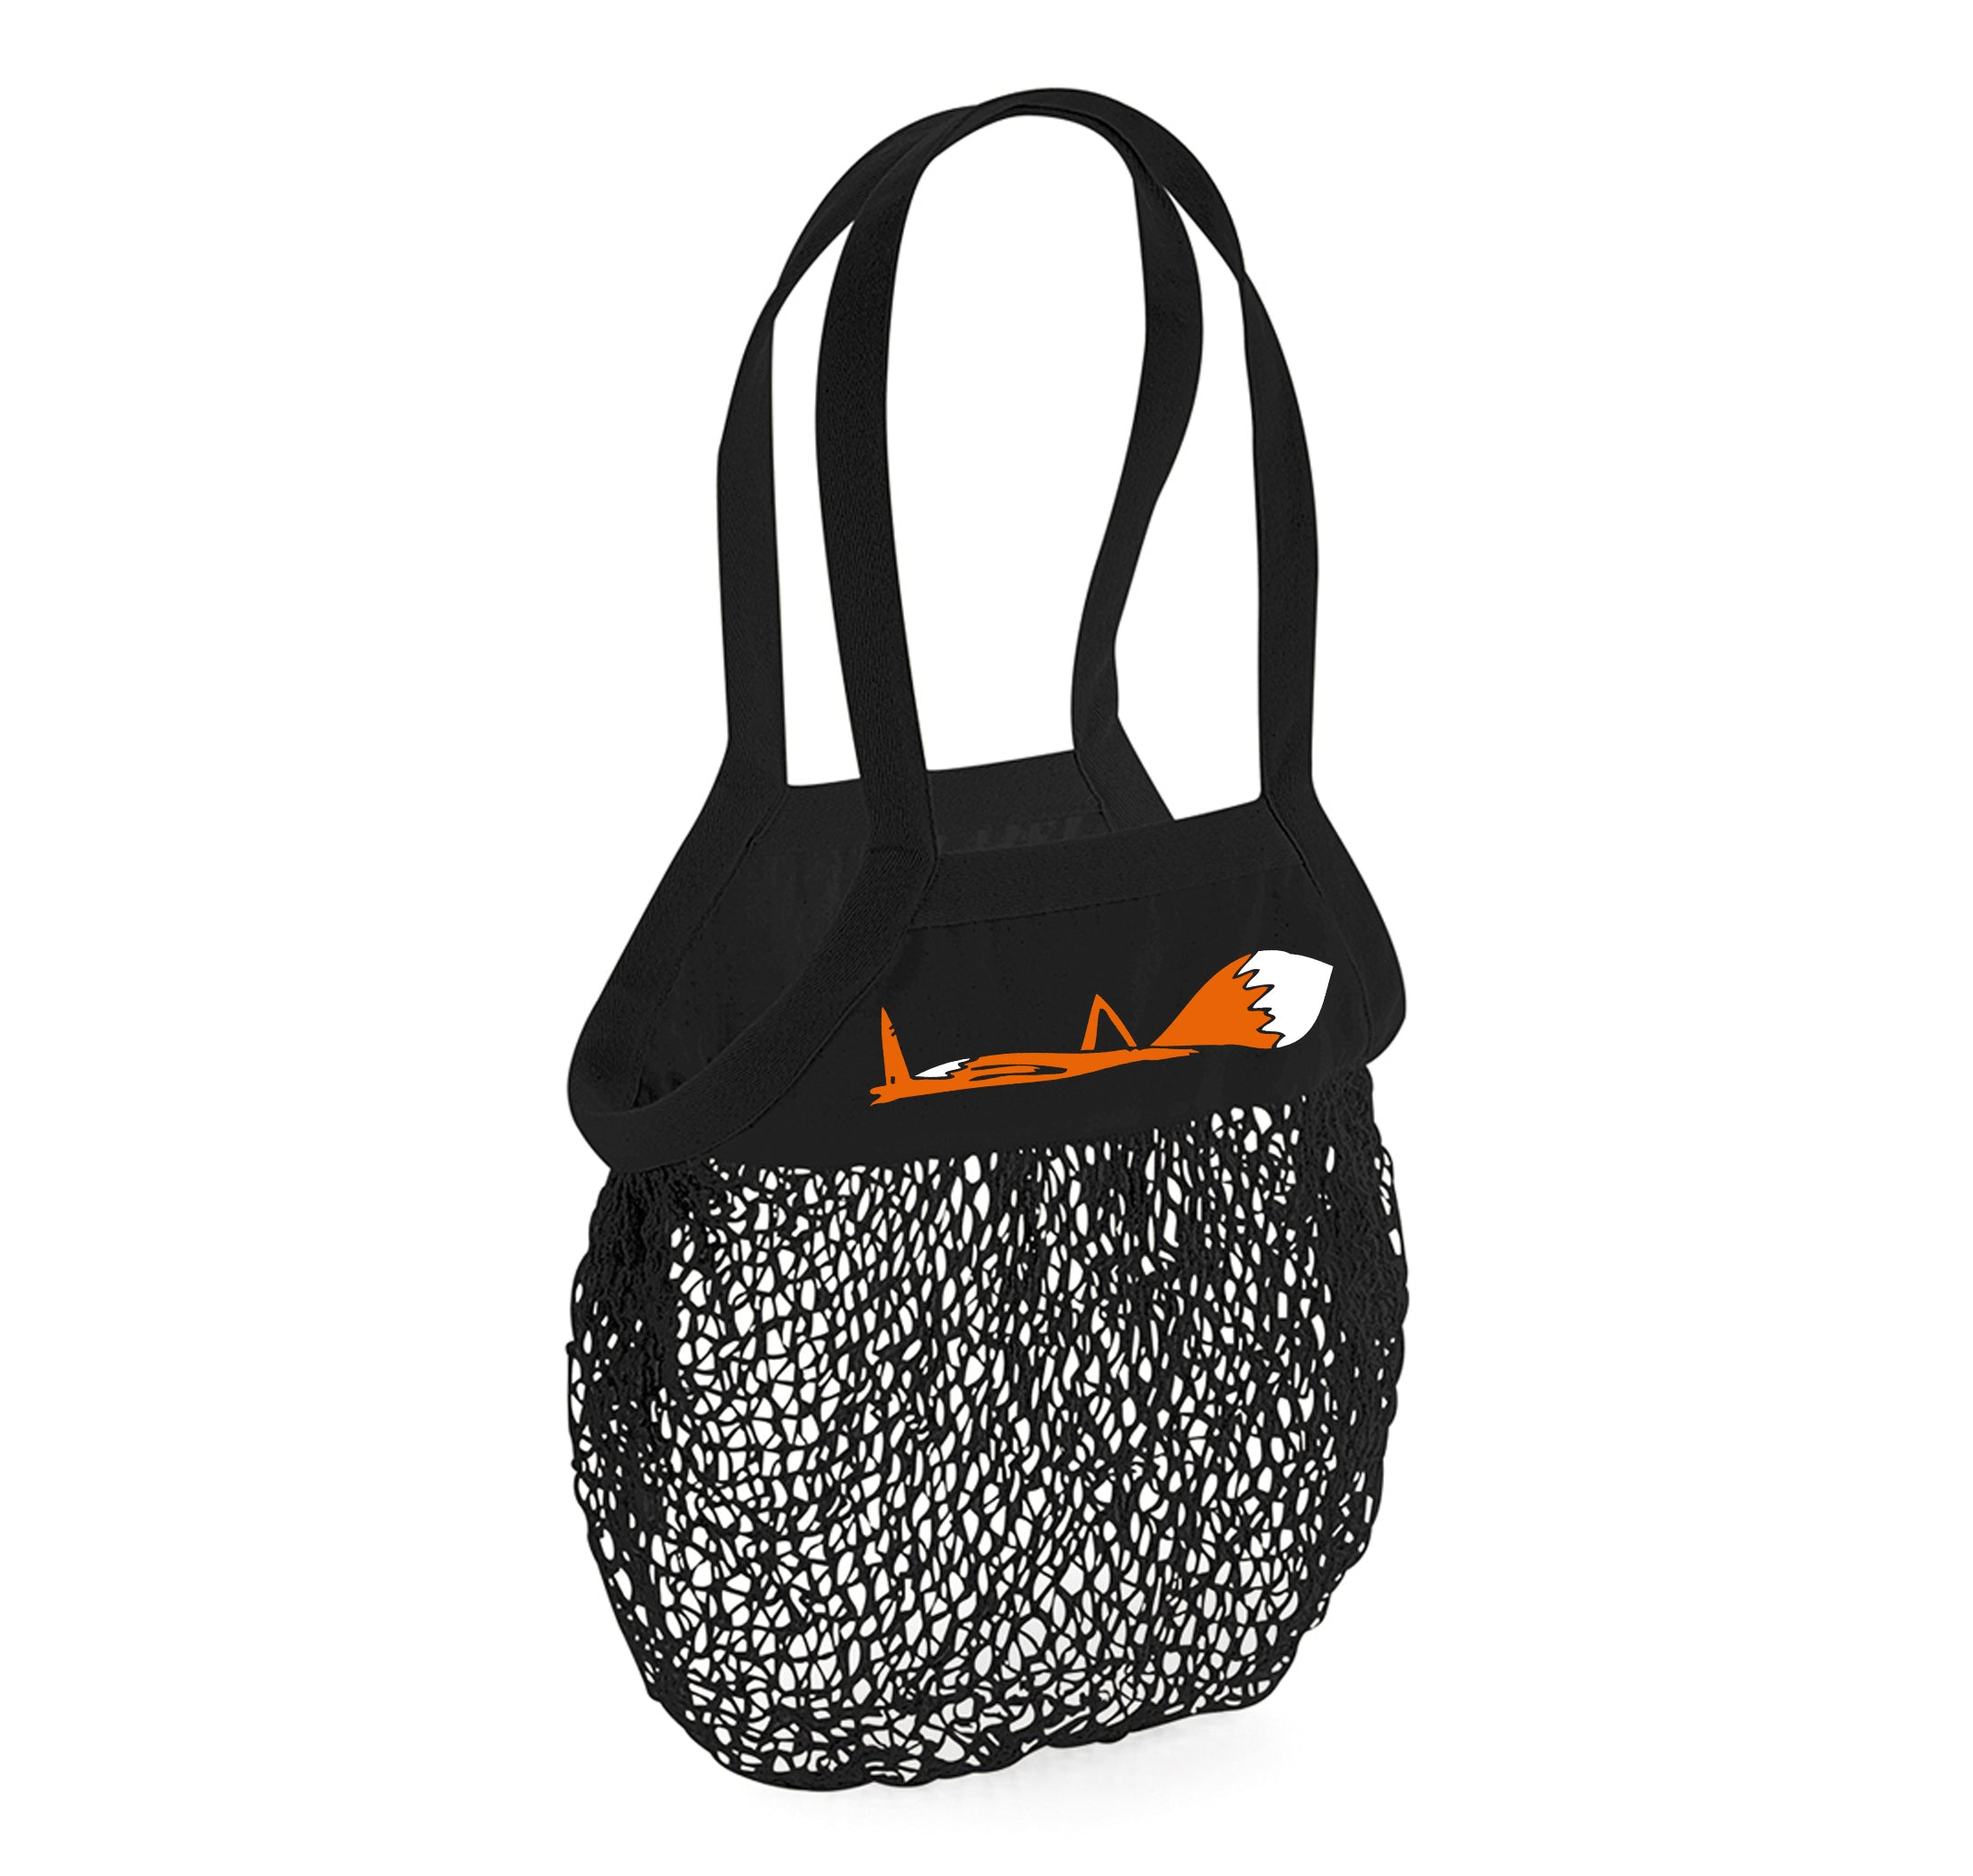 Mesh grocery bag, fox down